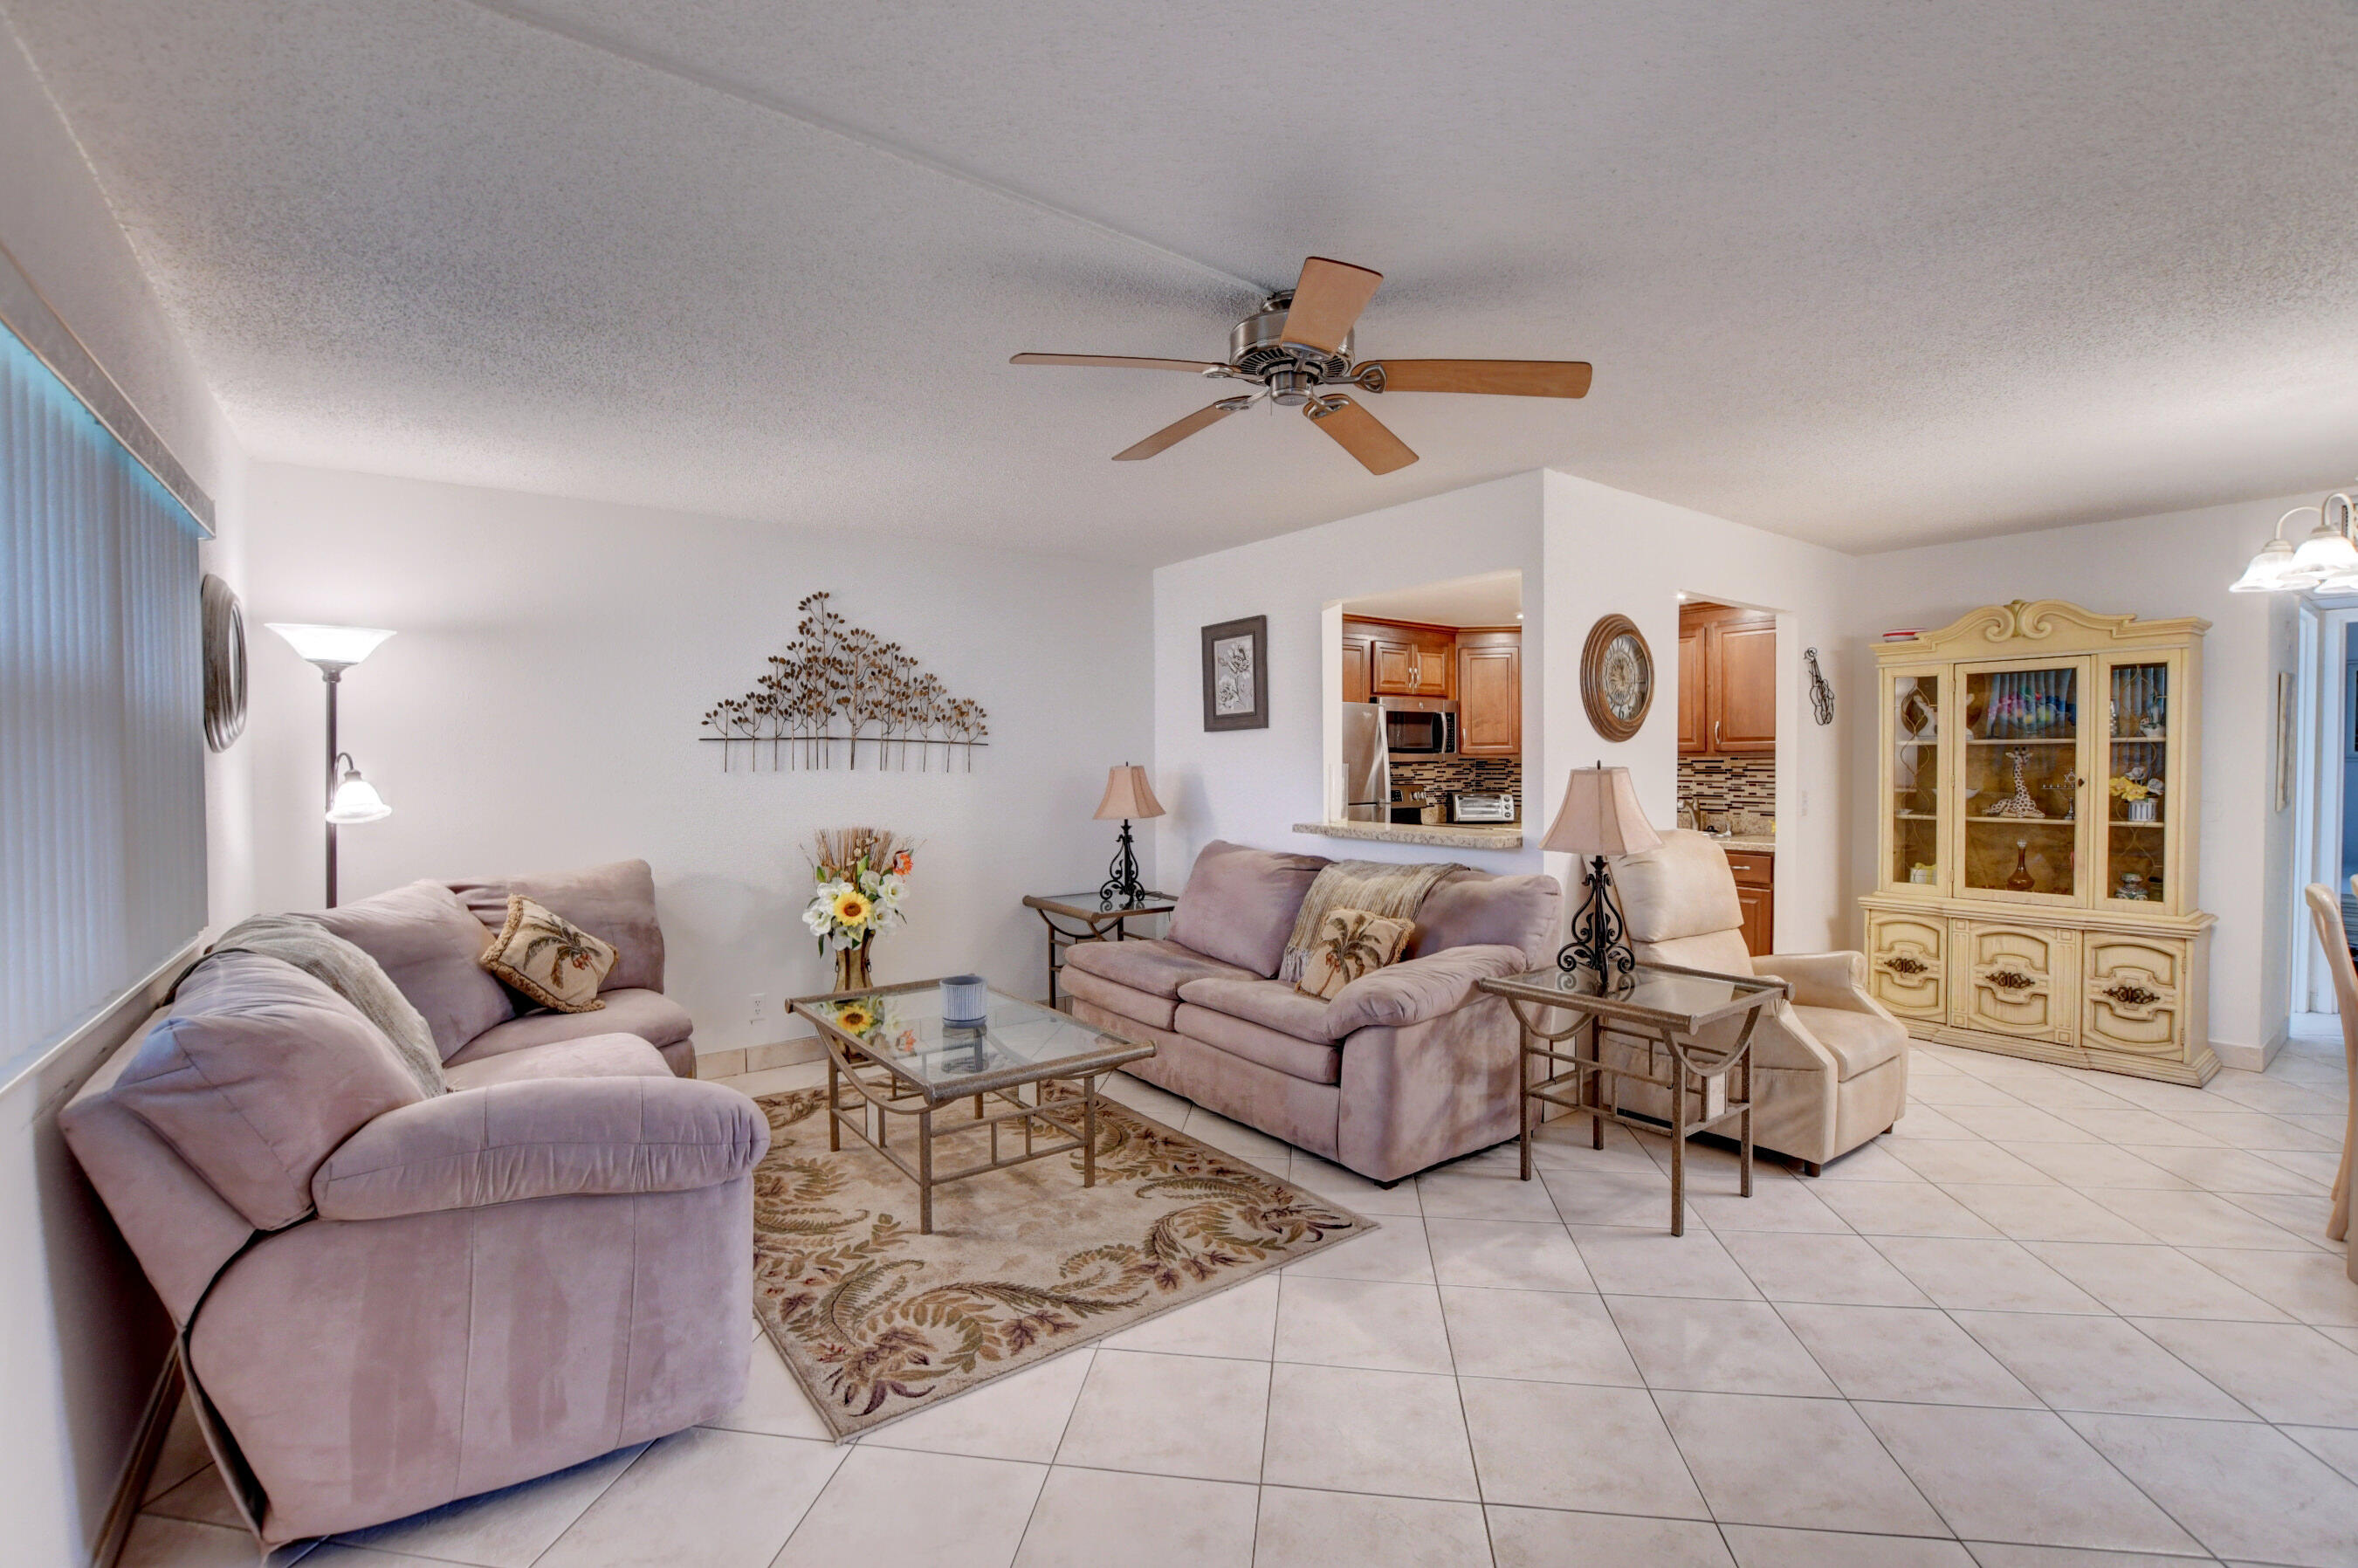 Just Listed Furnished Ground Floor condo right next to the Monaco Clubhouse. Remodeled Kitchen with stainless steel appliances and recessed lighting. Tile flooring in living area. Updated master bathroom , recessed lighting. Enclosed Patio with AC and washer and dryer in the patio. Compliant electrical box. This is A MUST SEE !